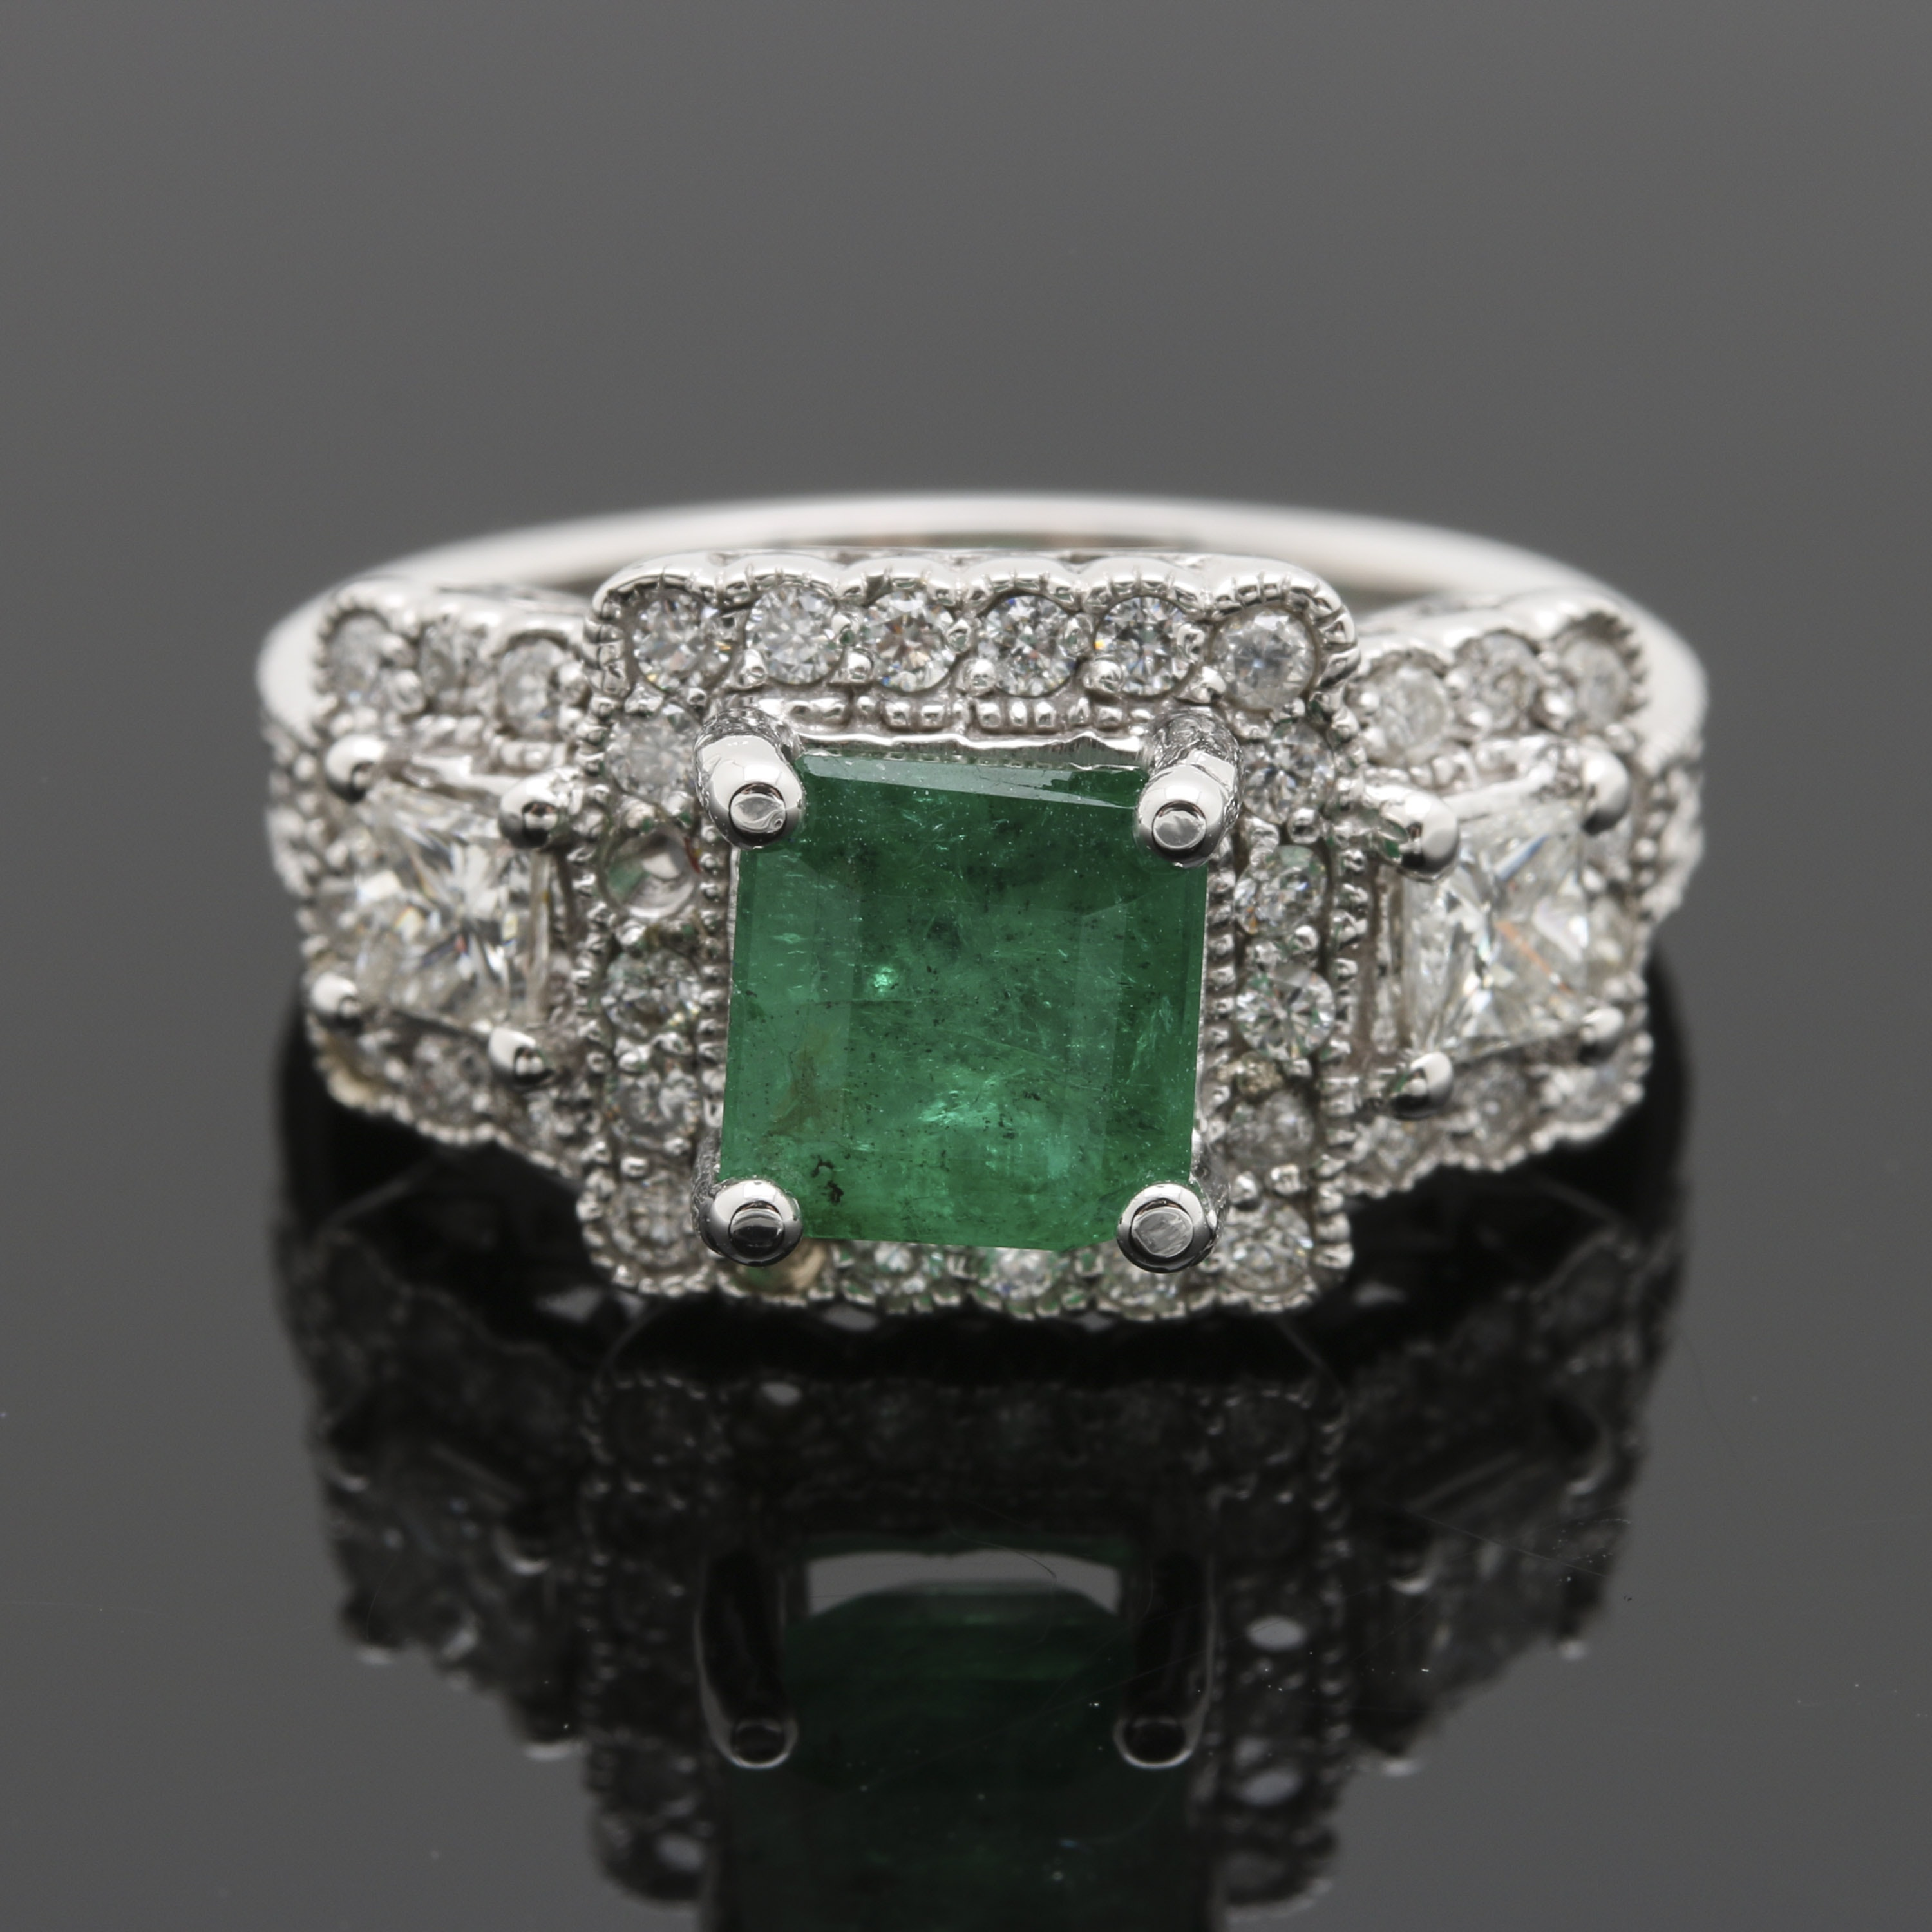 14K White Gold Emerald and 1.13 CTW Diamond Ring